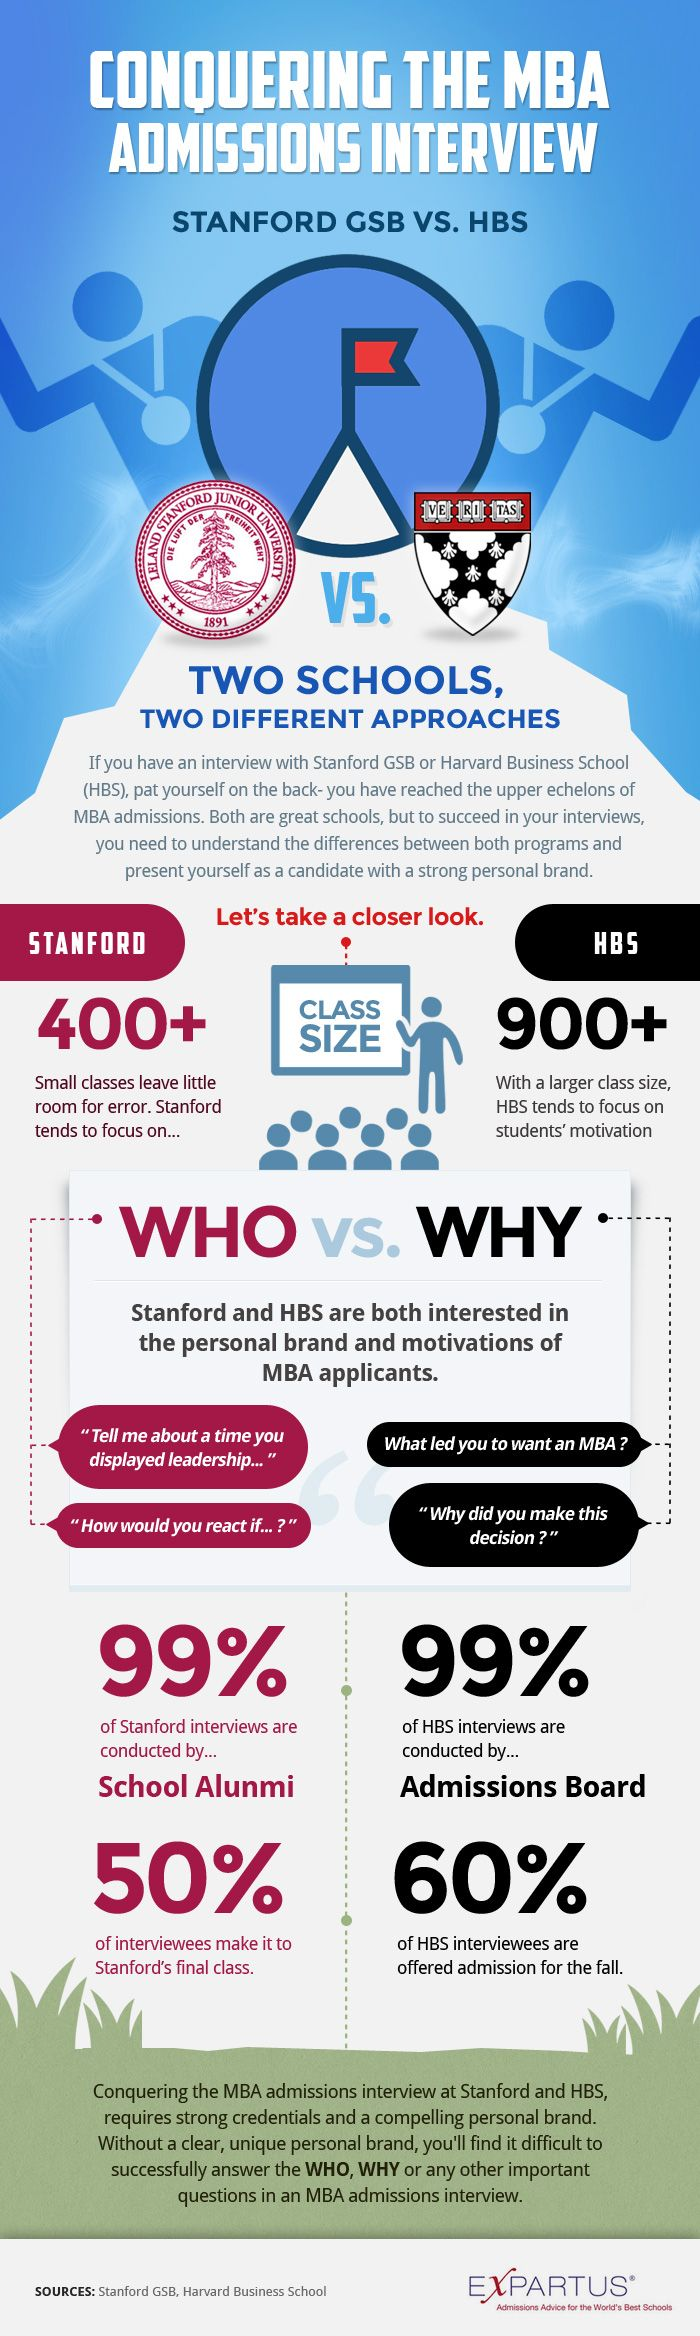 EXPARTUS MBA Admissions Consulting (www.expartus.com). Stanford GSB vs HBS MBA admissions interviews